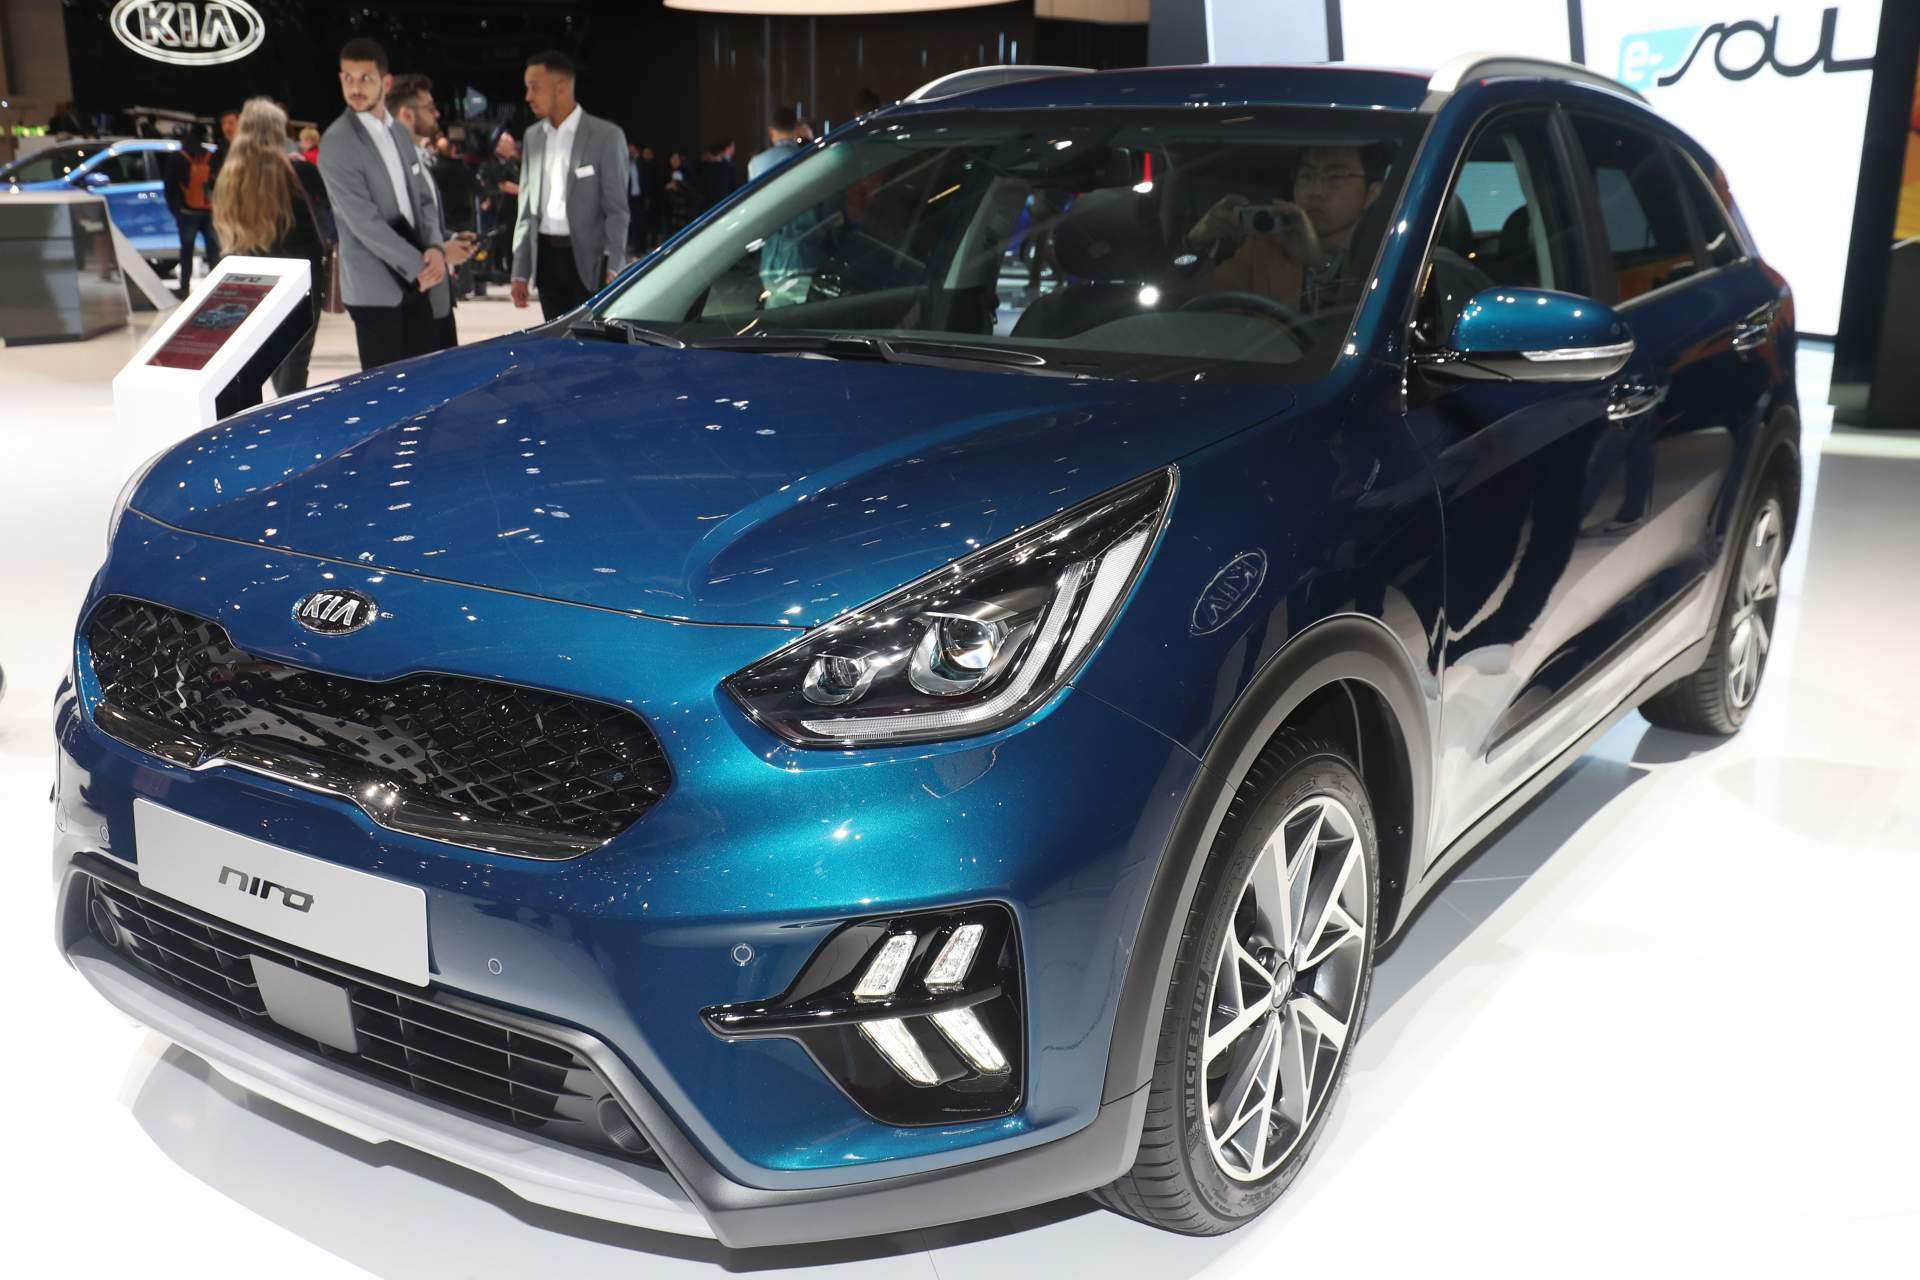 76 The Best Kia Niro 2020 Price And Review